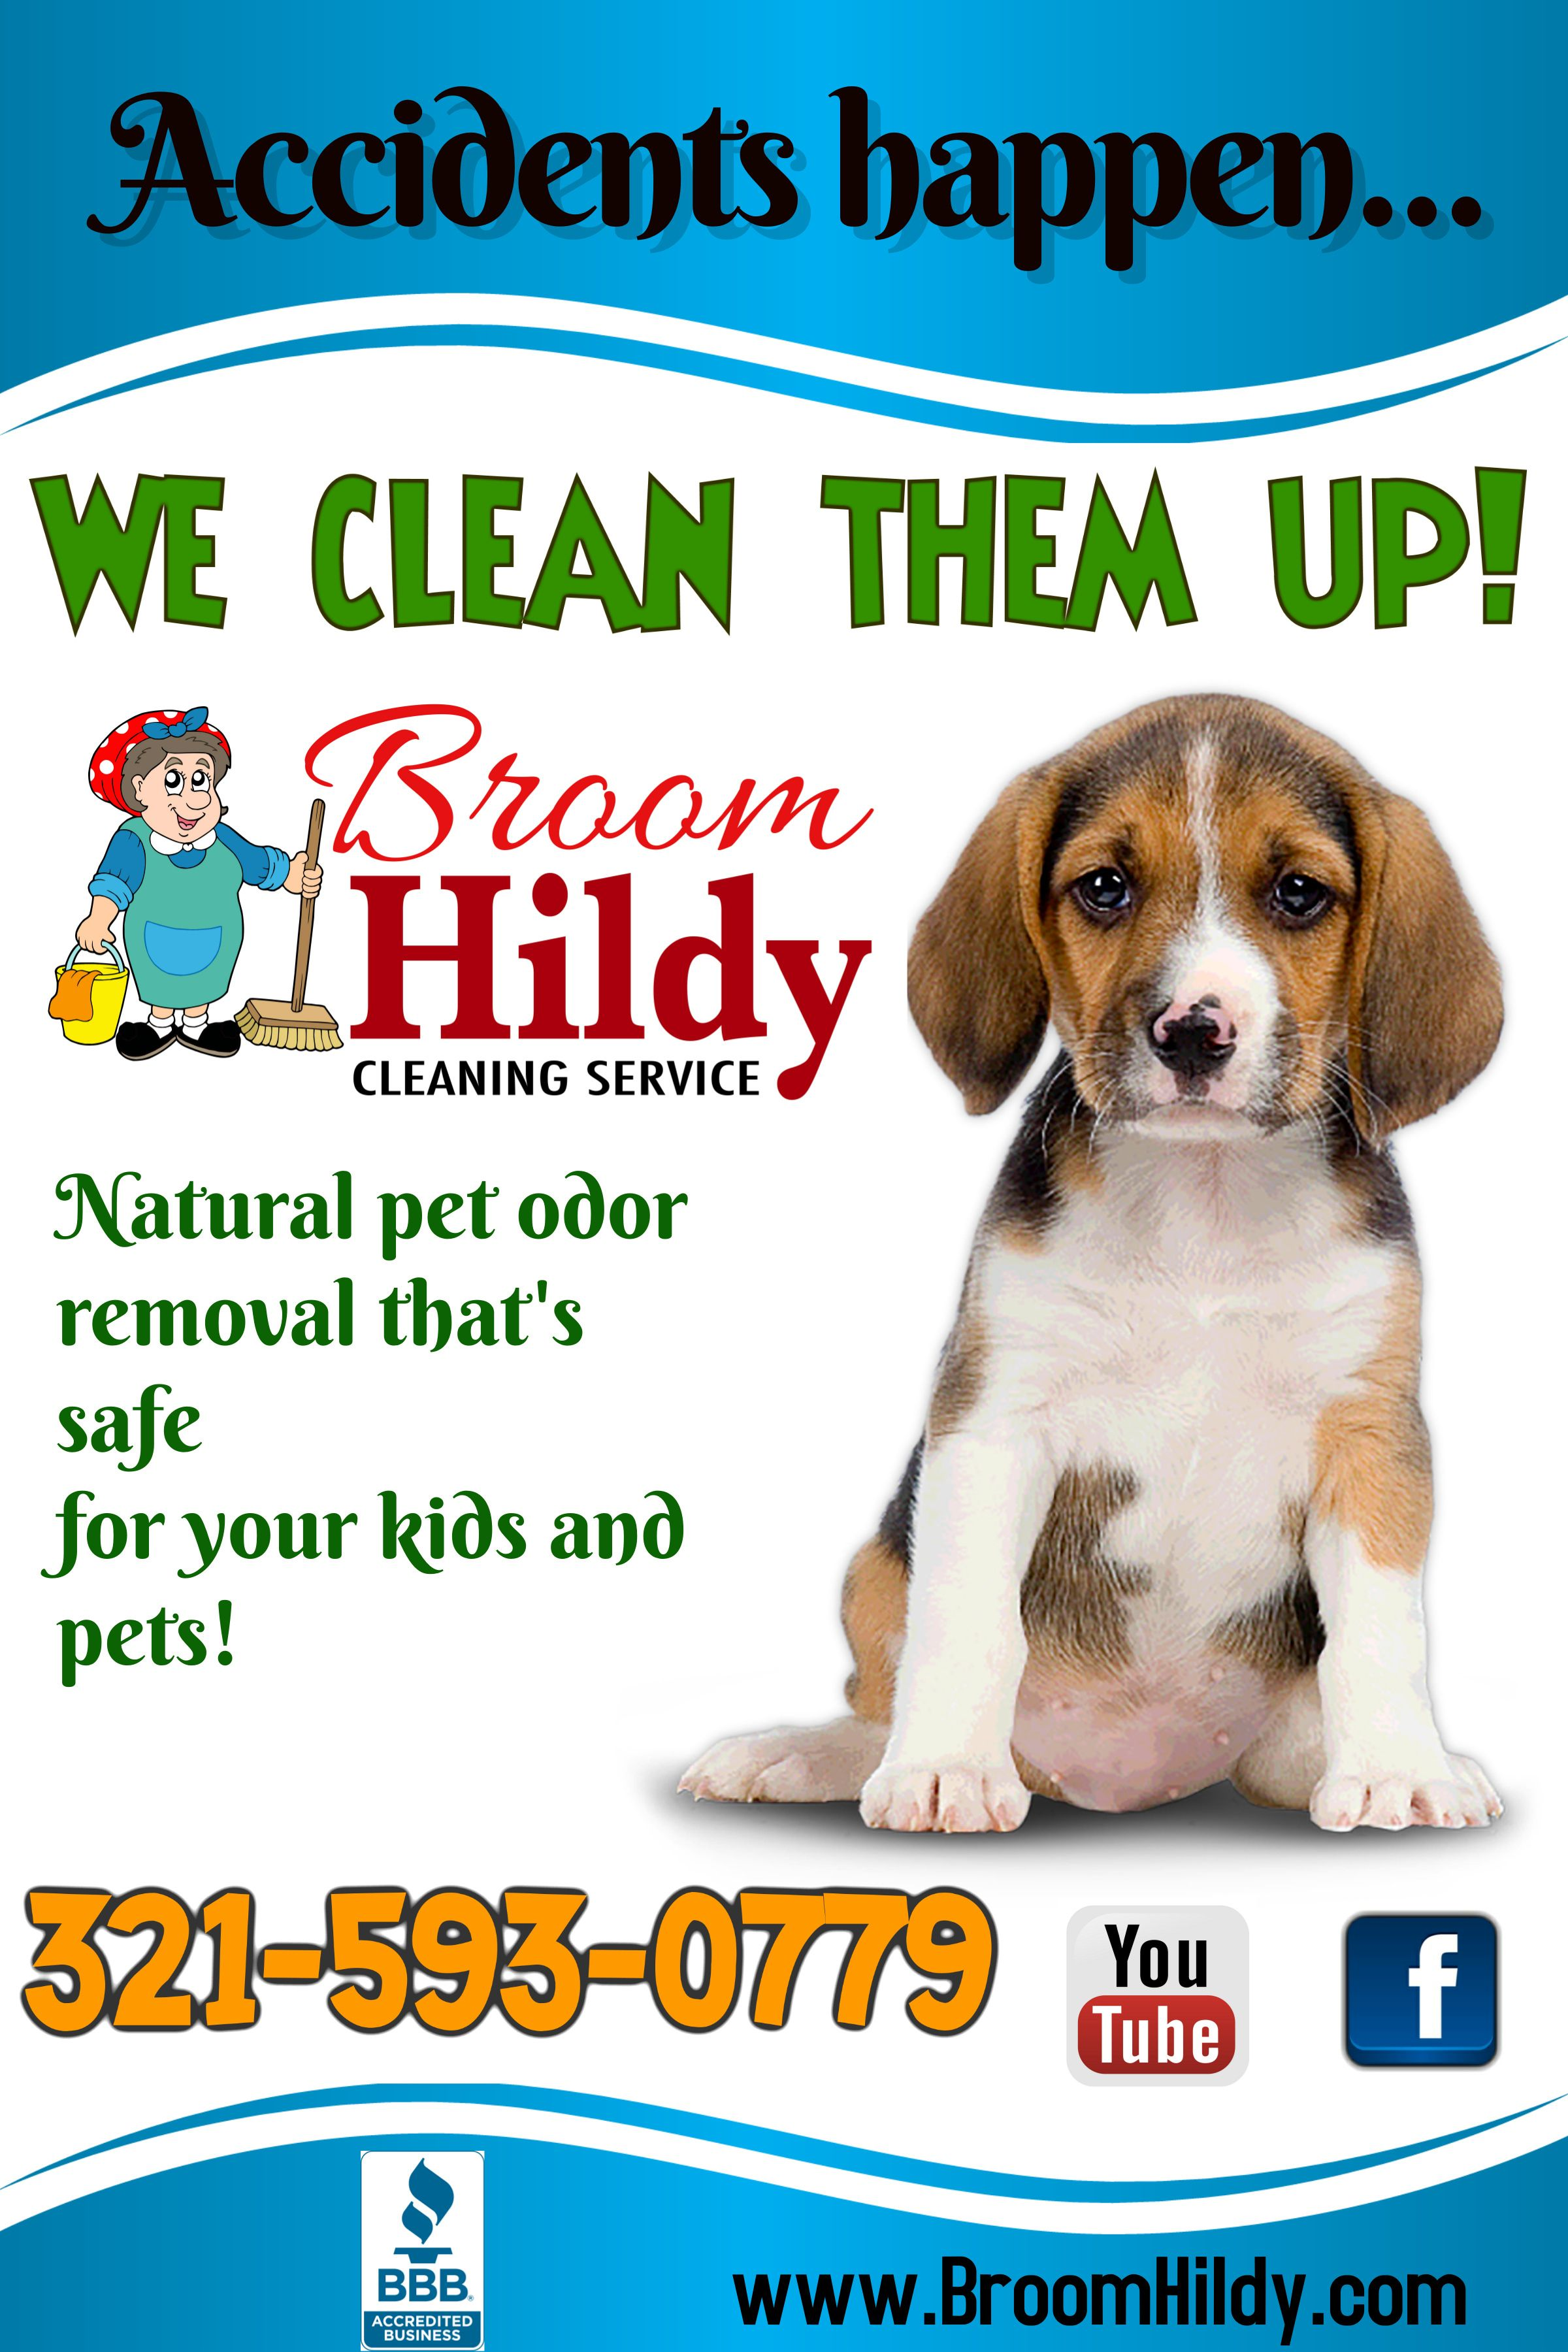 cleaning service, carpet cleaning, window cleaning, tile grout ...